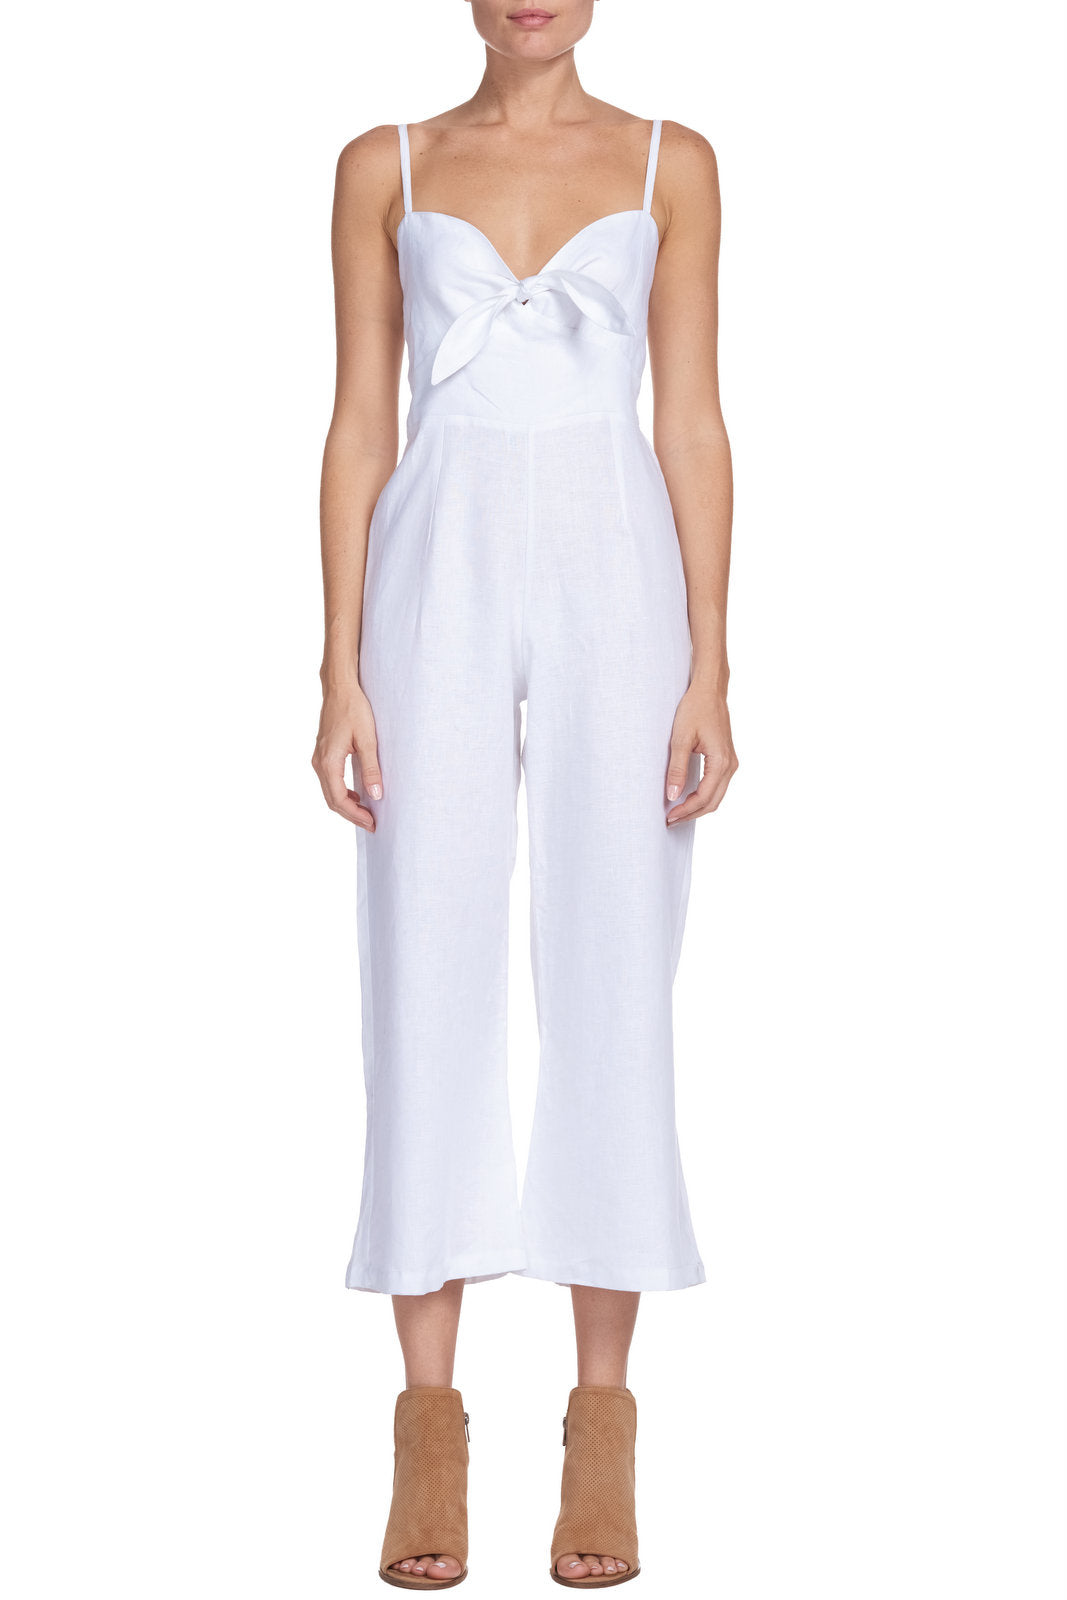 Spaghetti Strap Jumpsuit with Tie Top